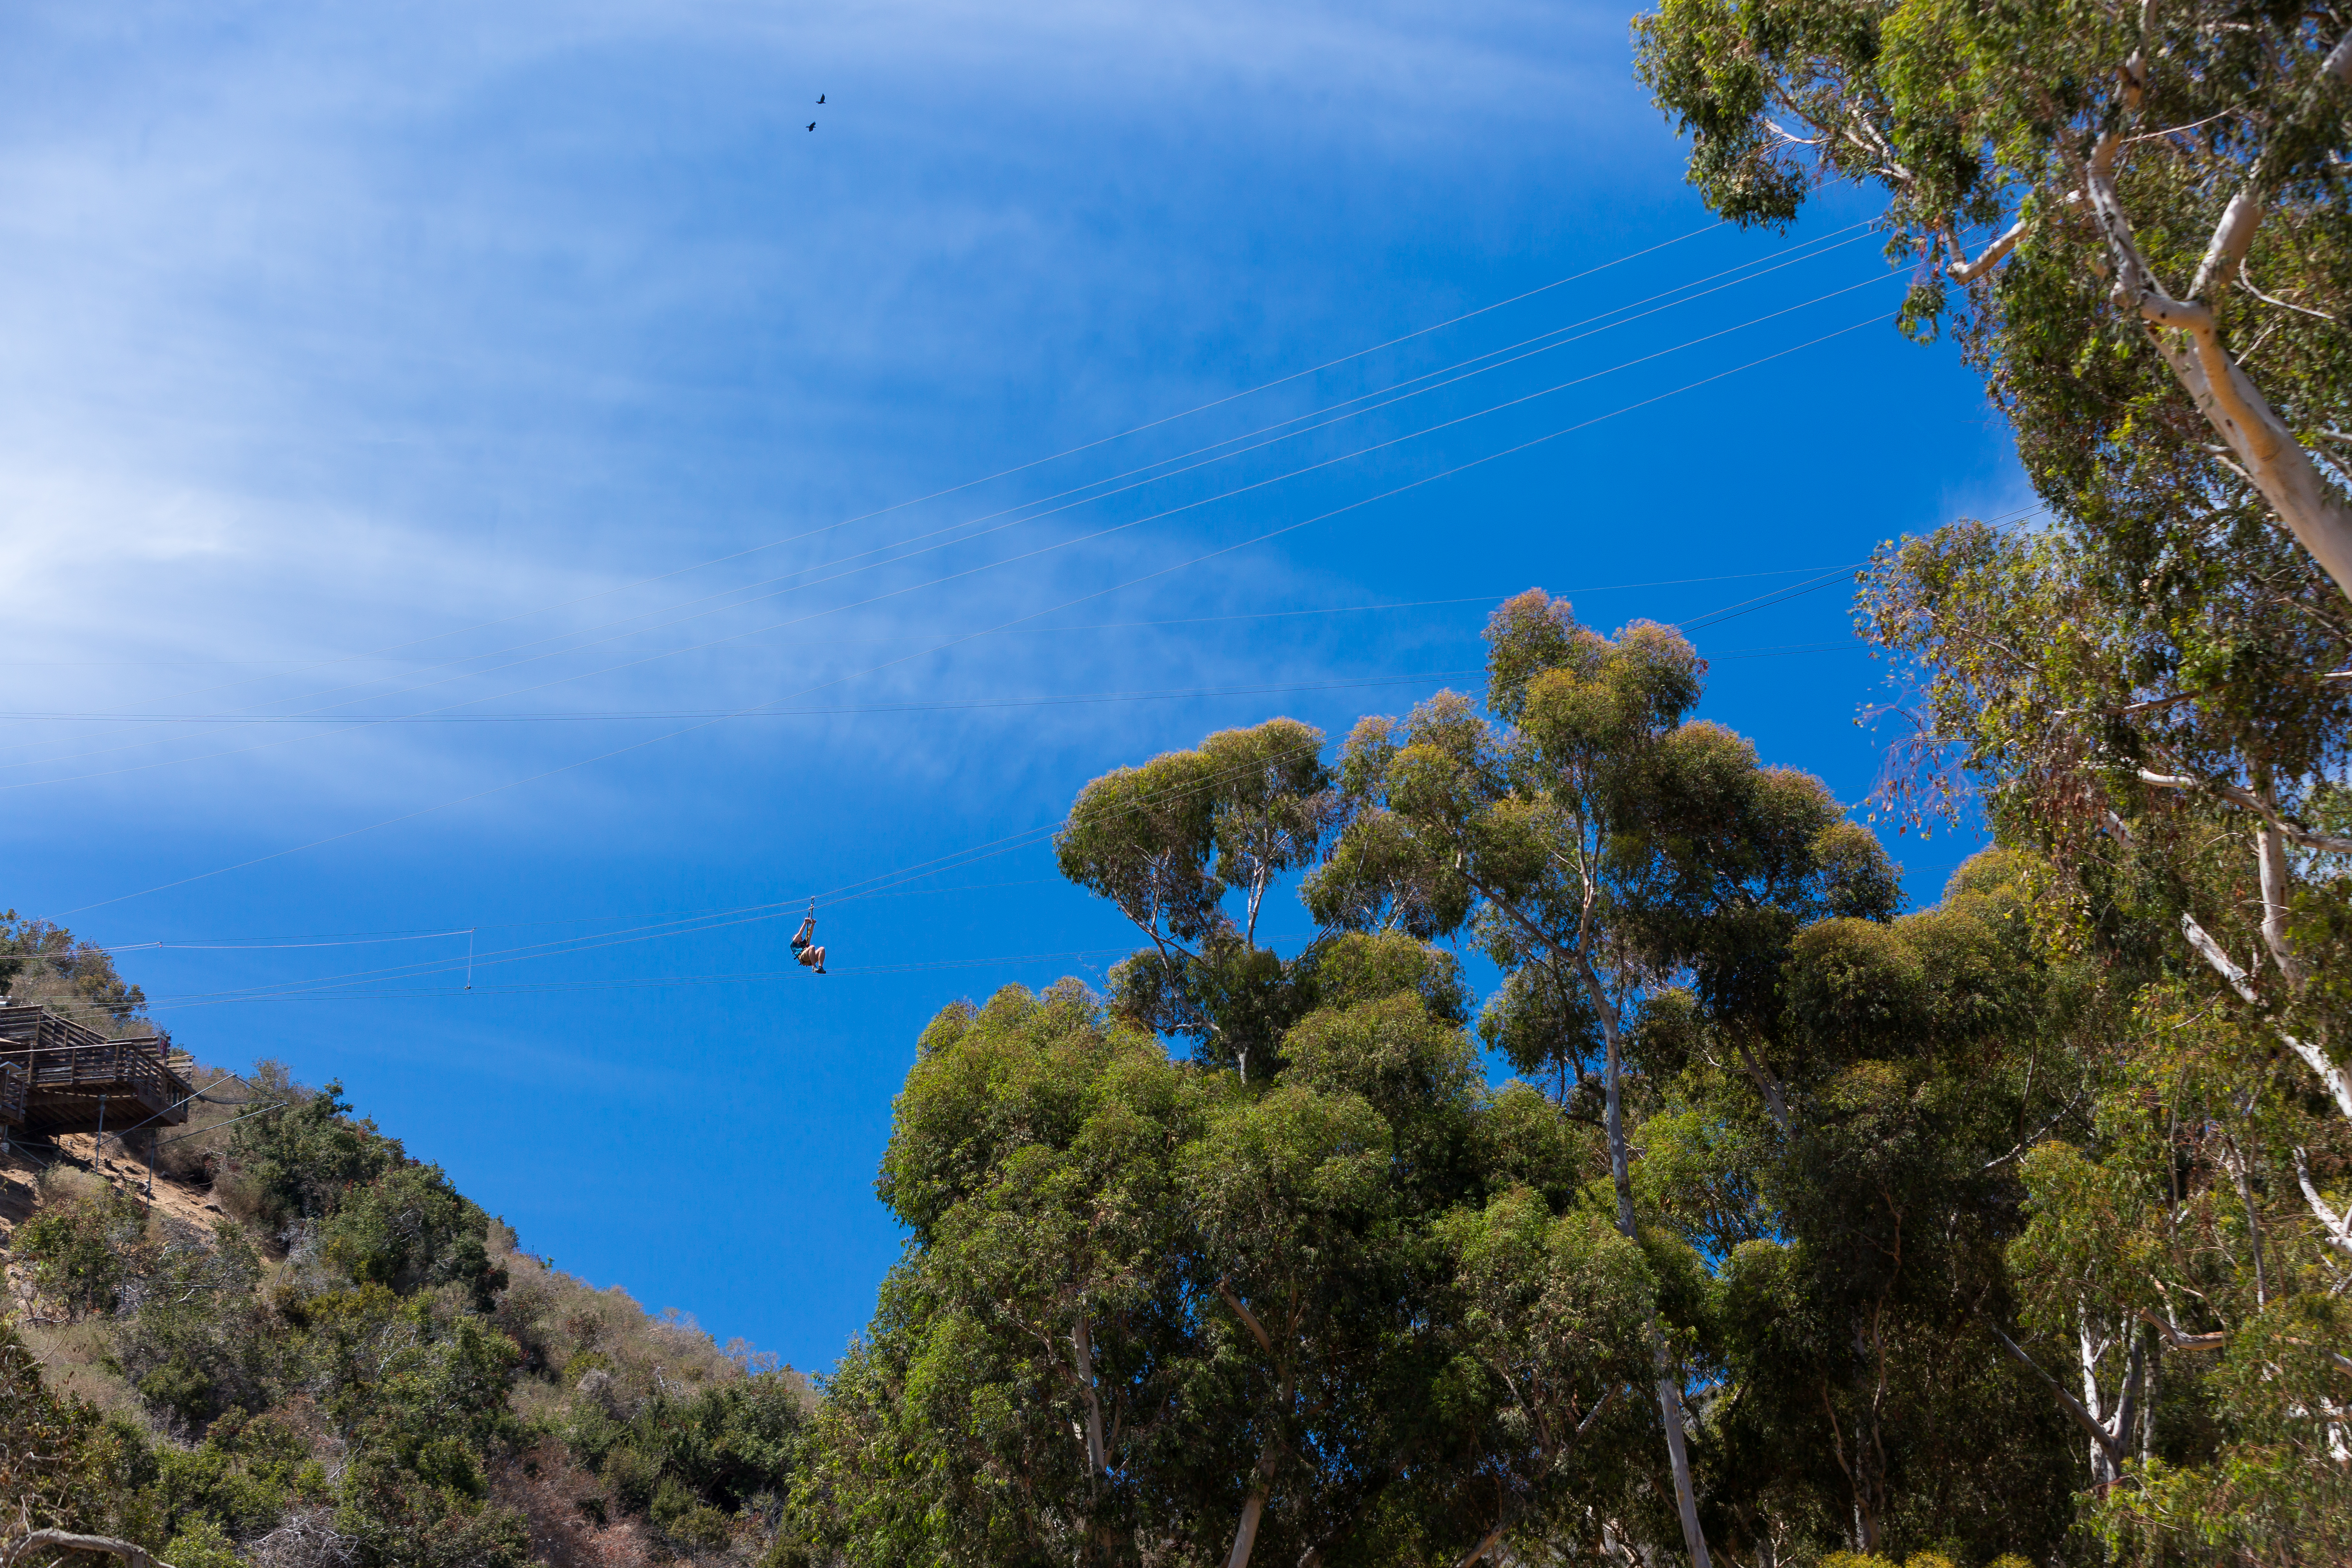 Catalina Island Zip Line Eco Tour | Find Things to Do